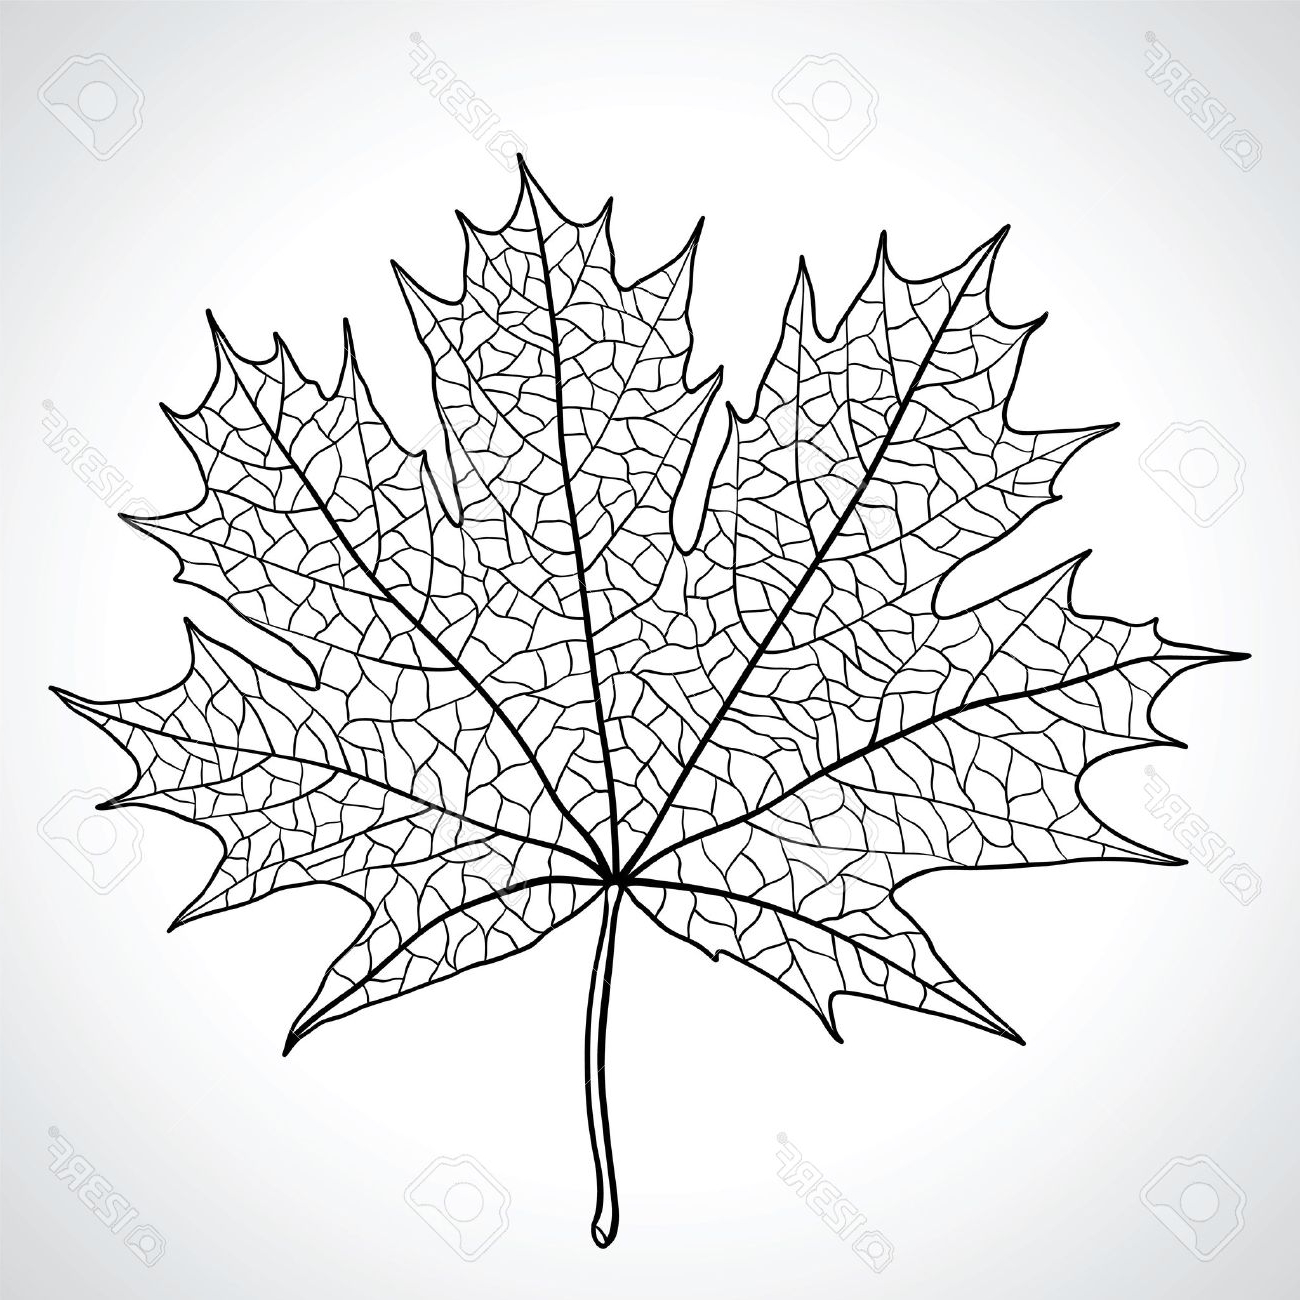 1300x1300 Black And White Nature Drawing Image In Hd